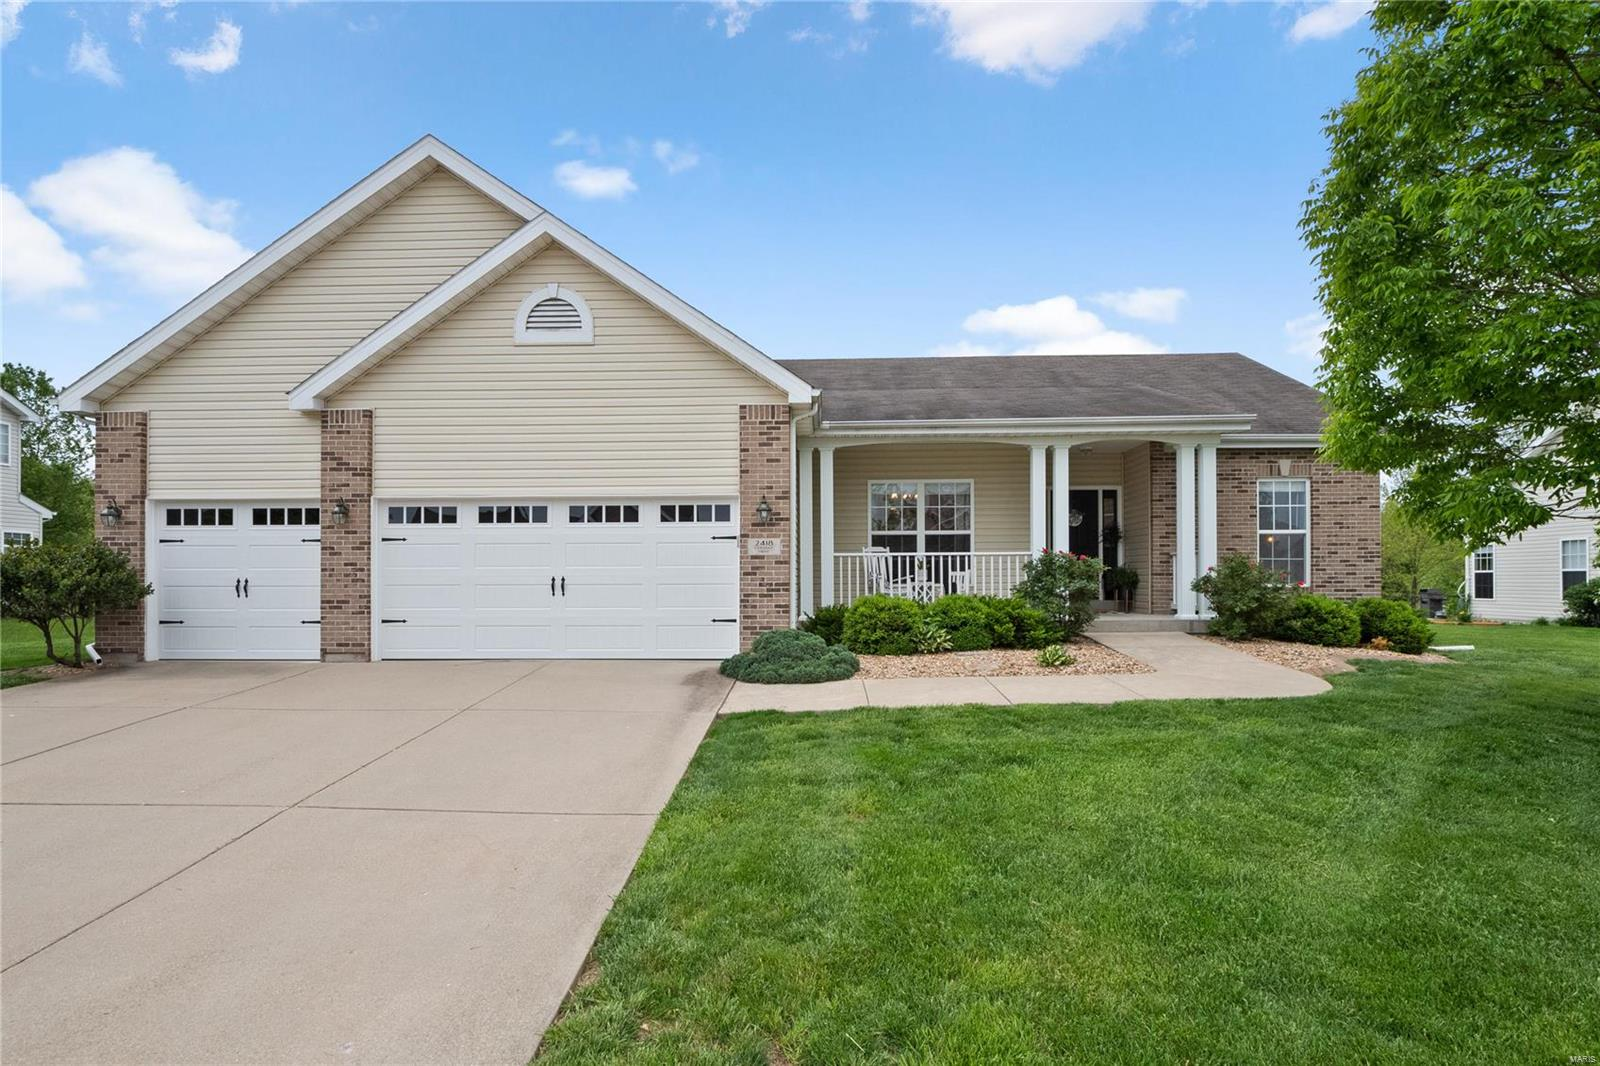 2418 Fairway Drive Property Photo - Belleville, IL real estate listing